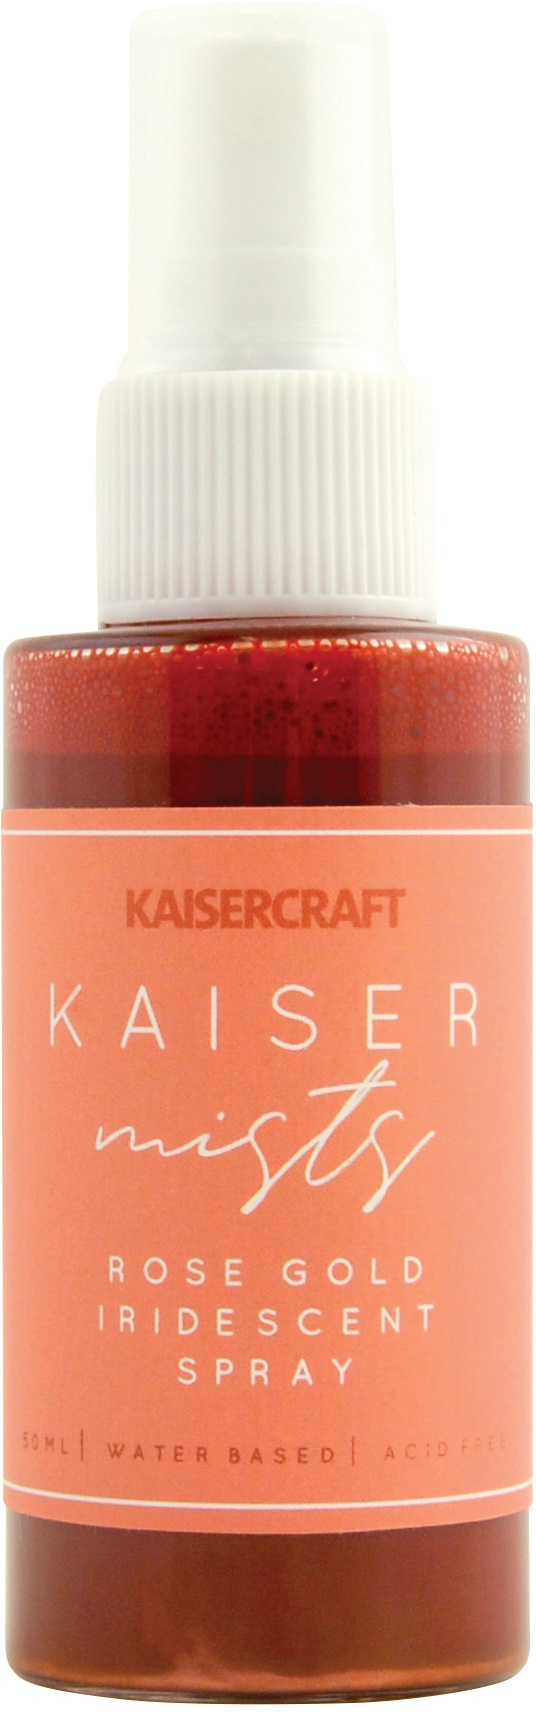 KaiserMists Iridescent Ink Spray 1.5oz-Rose Gold